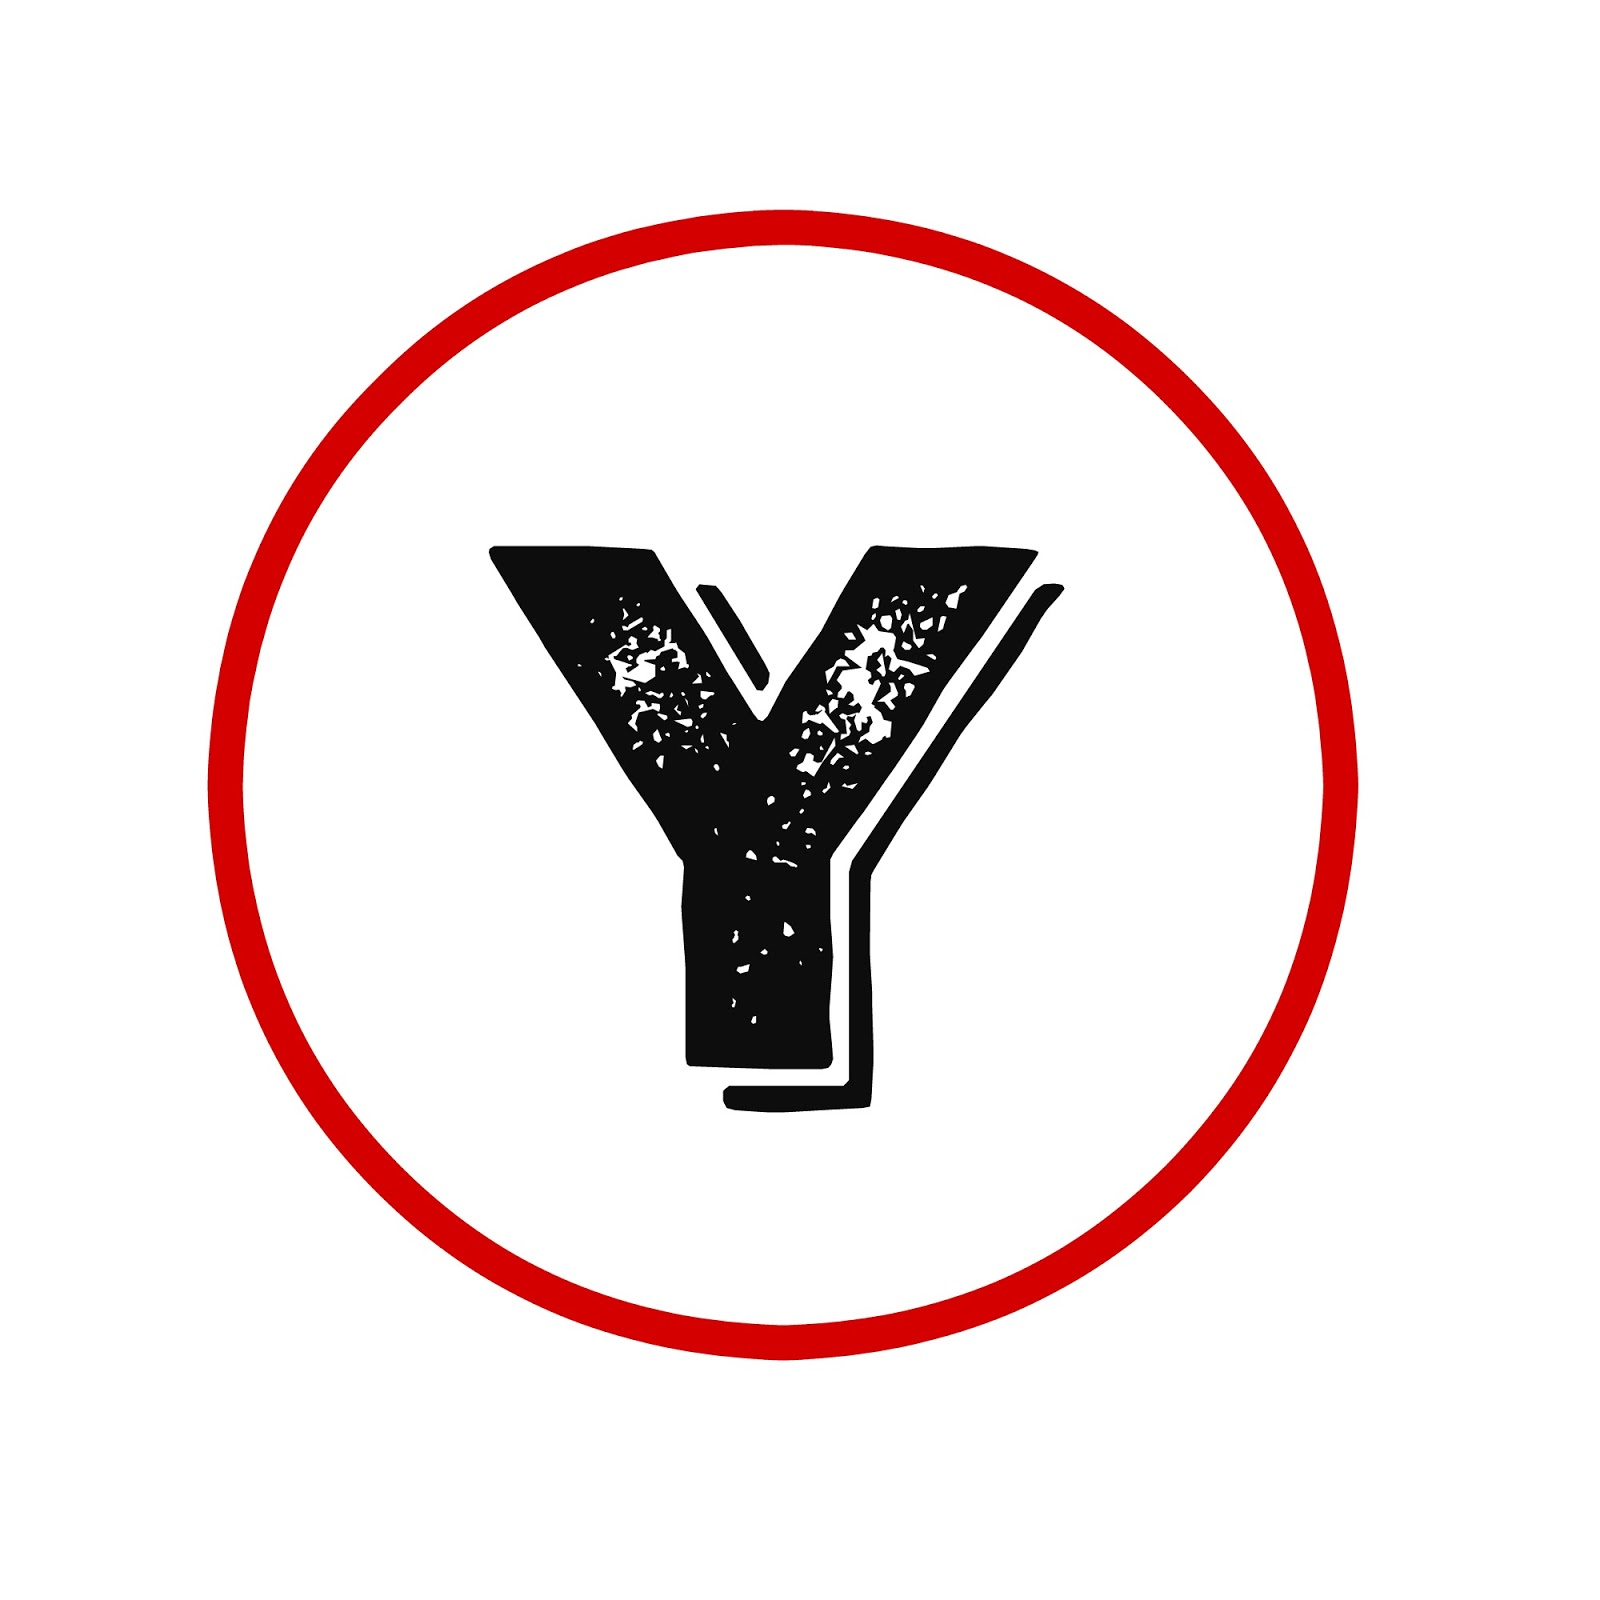 Michelle paige blogs yo yo printable valentines y is for yo yo my teenage son is the type of kid that always needs a toy to play with surprisingly and thankfully hes not over obsessed with the video buycottarizona Images